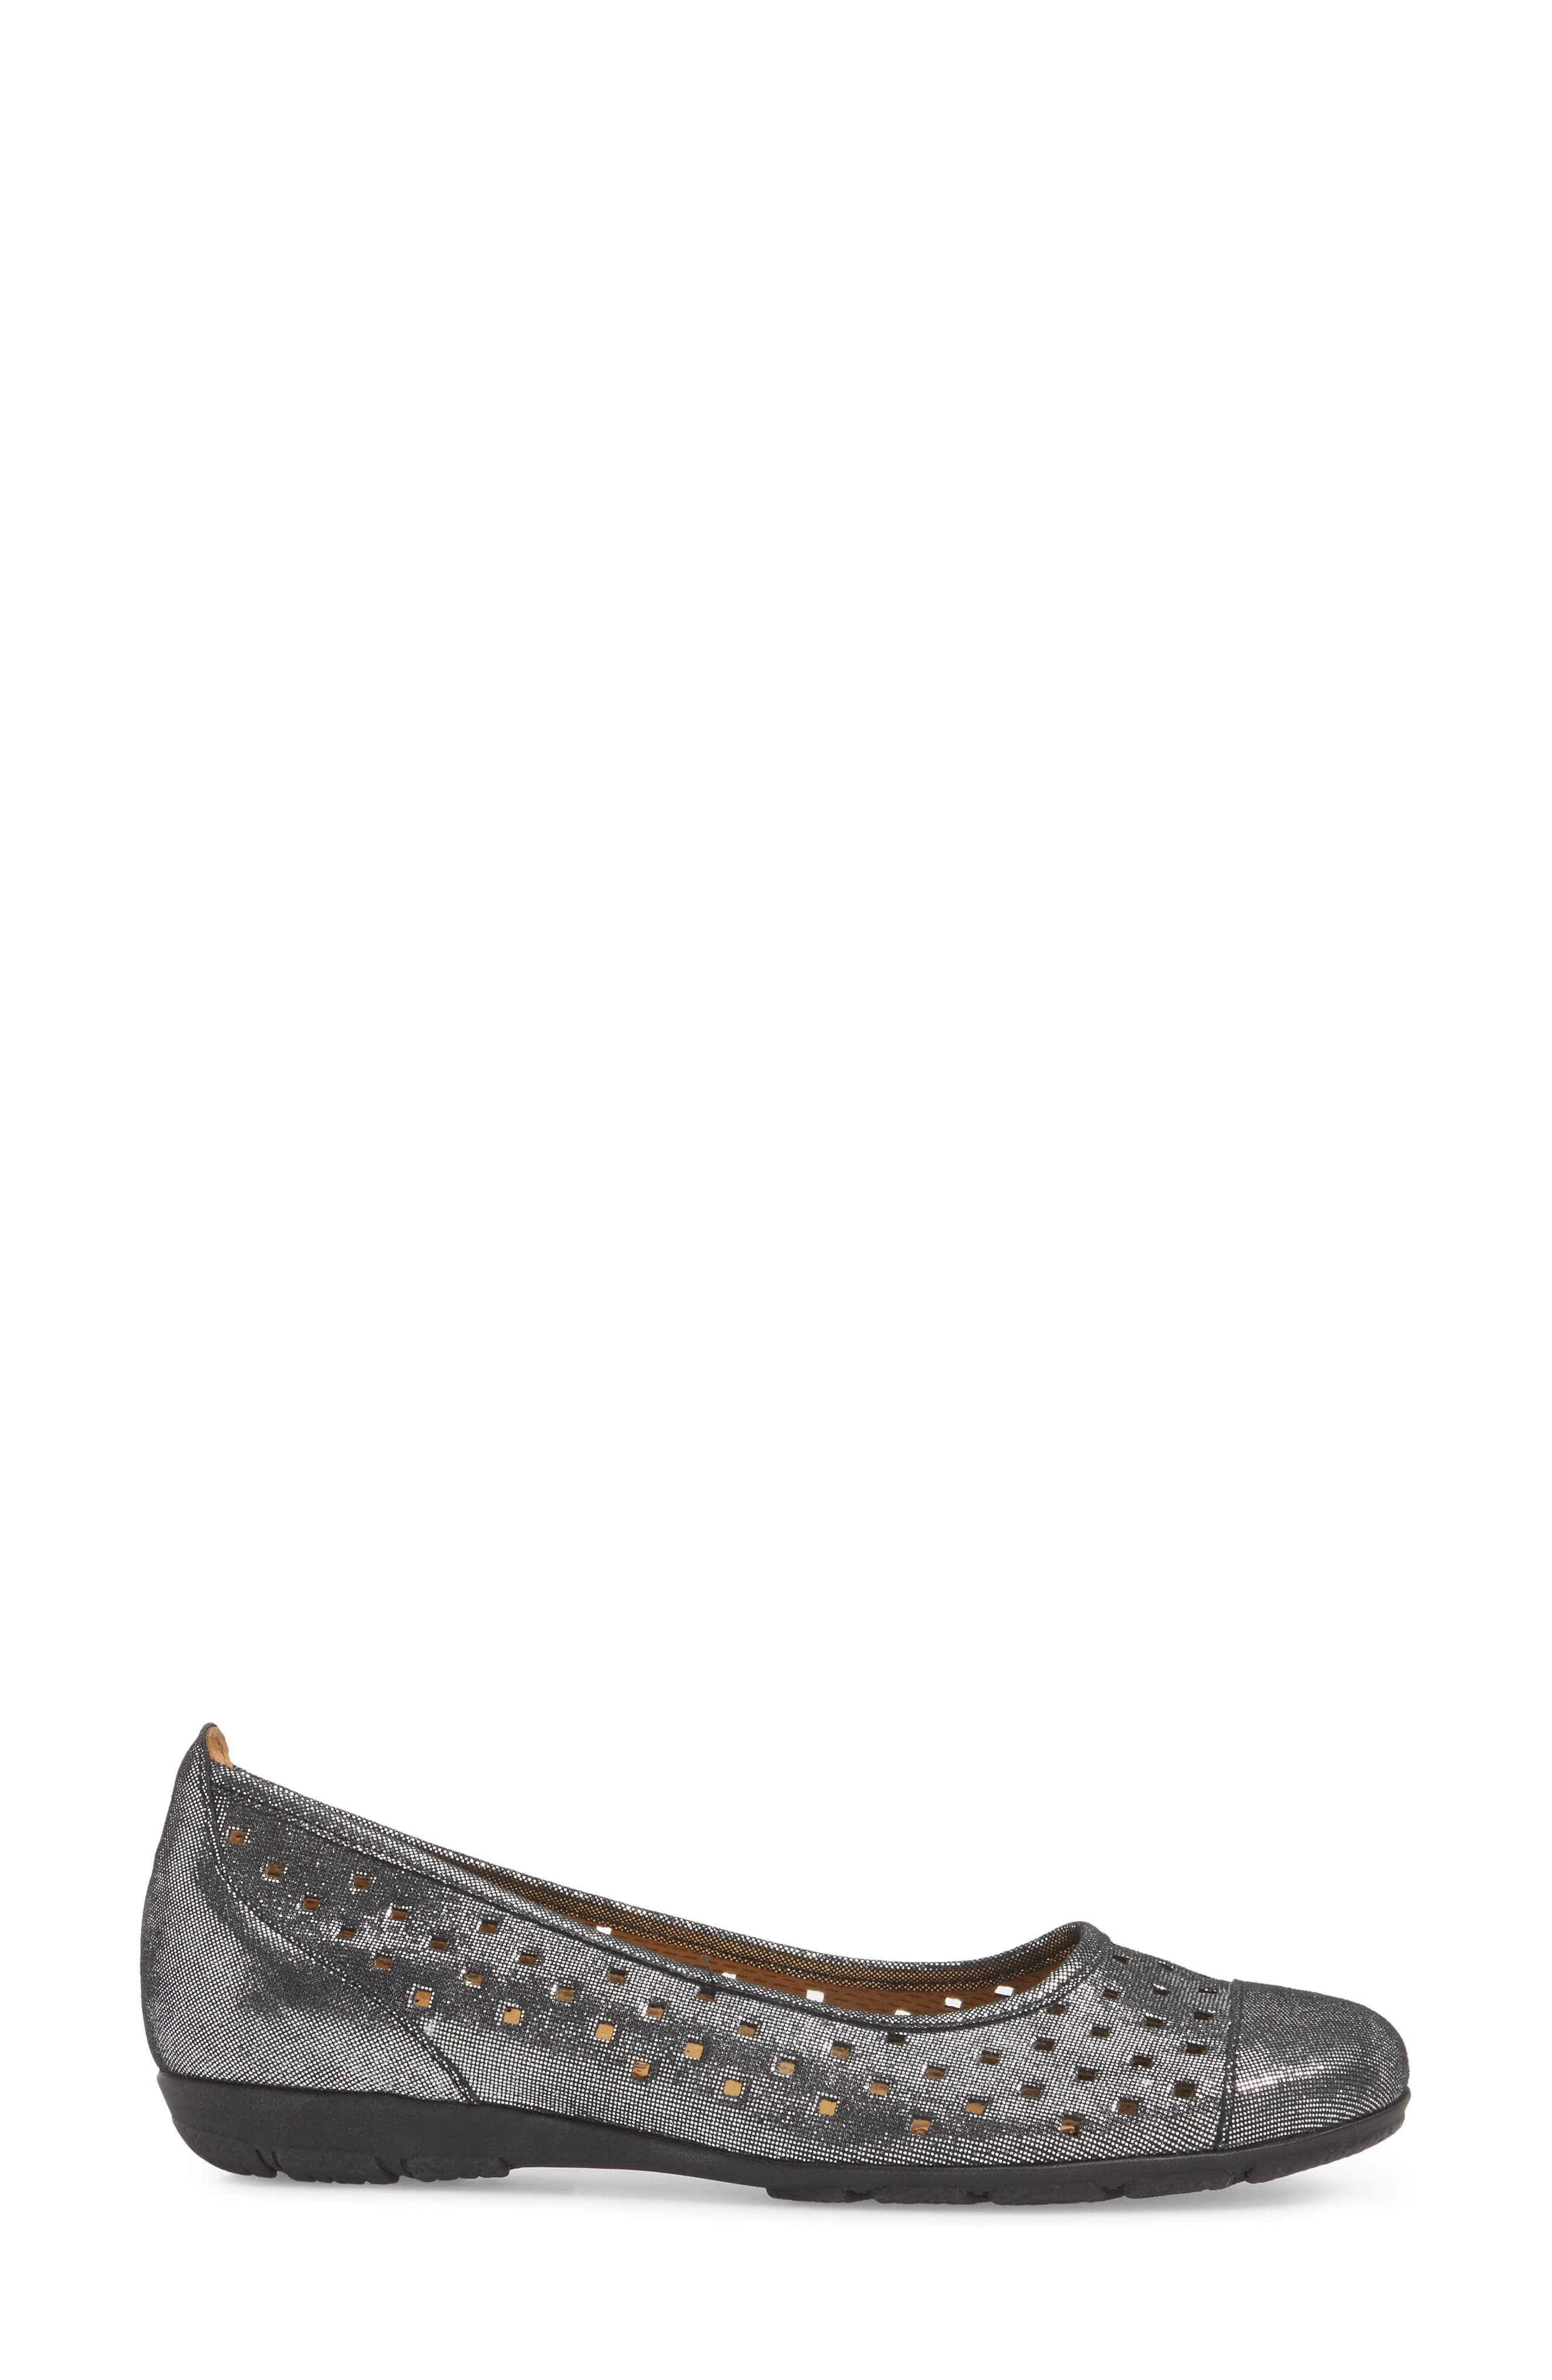 Perforated Ballet Flat,                             Alternate thumbnail 3, color,                             BLACK METALLIC LEATHER